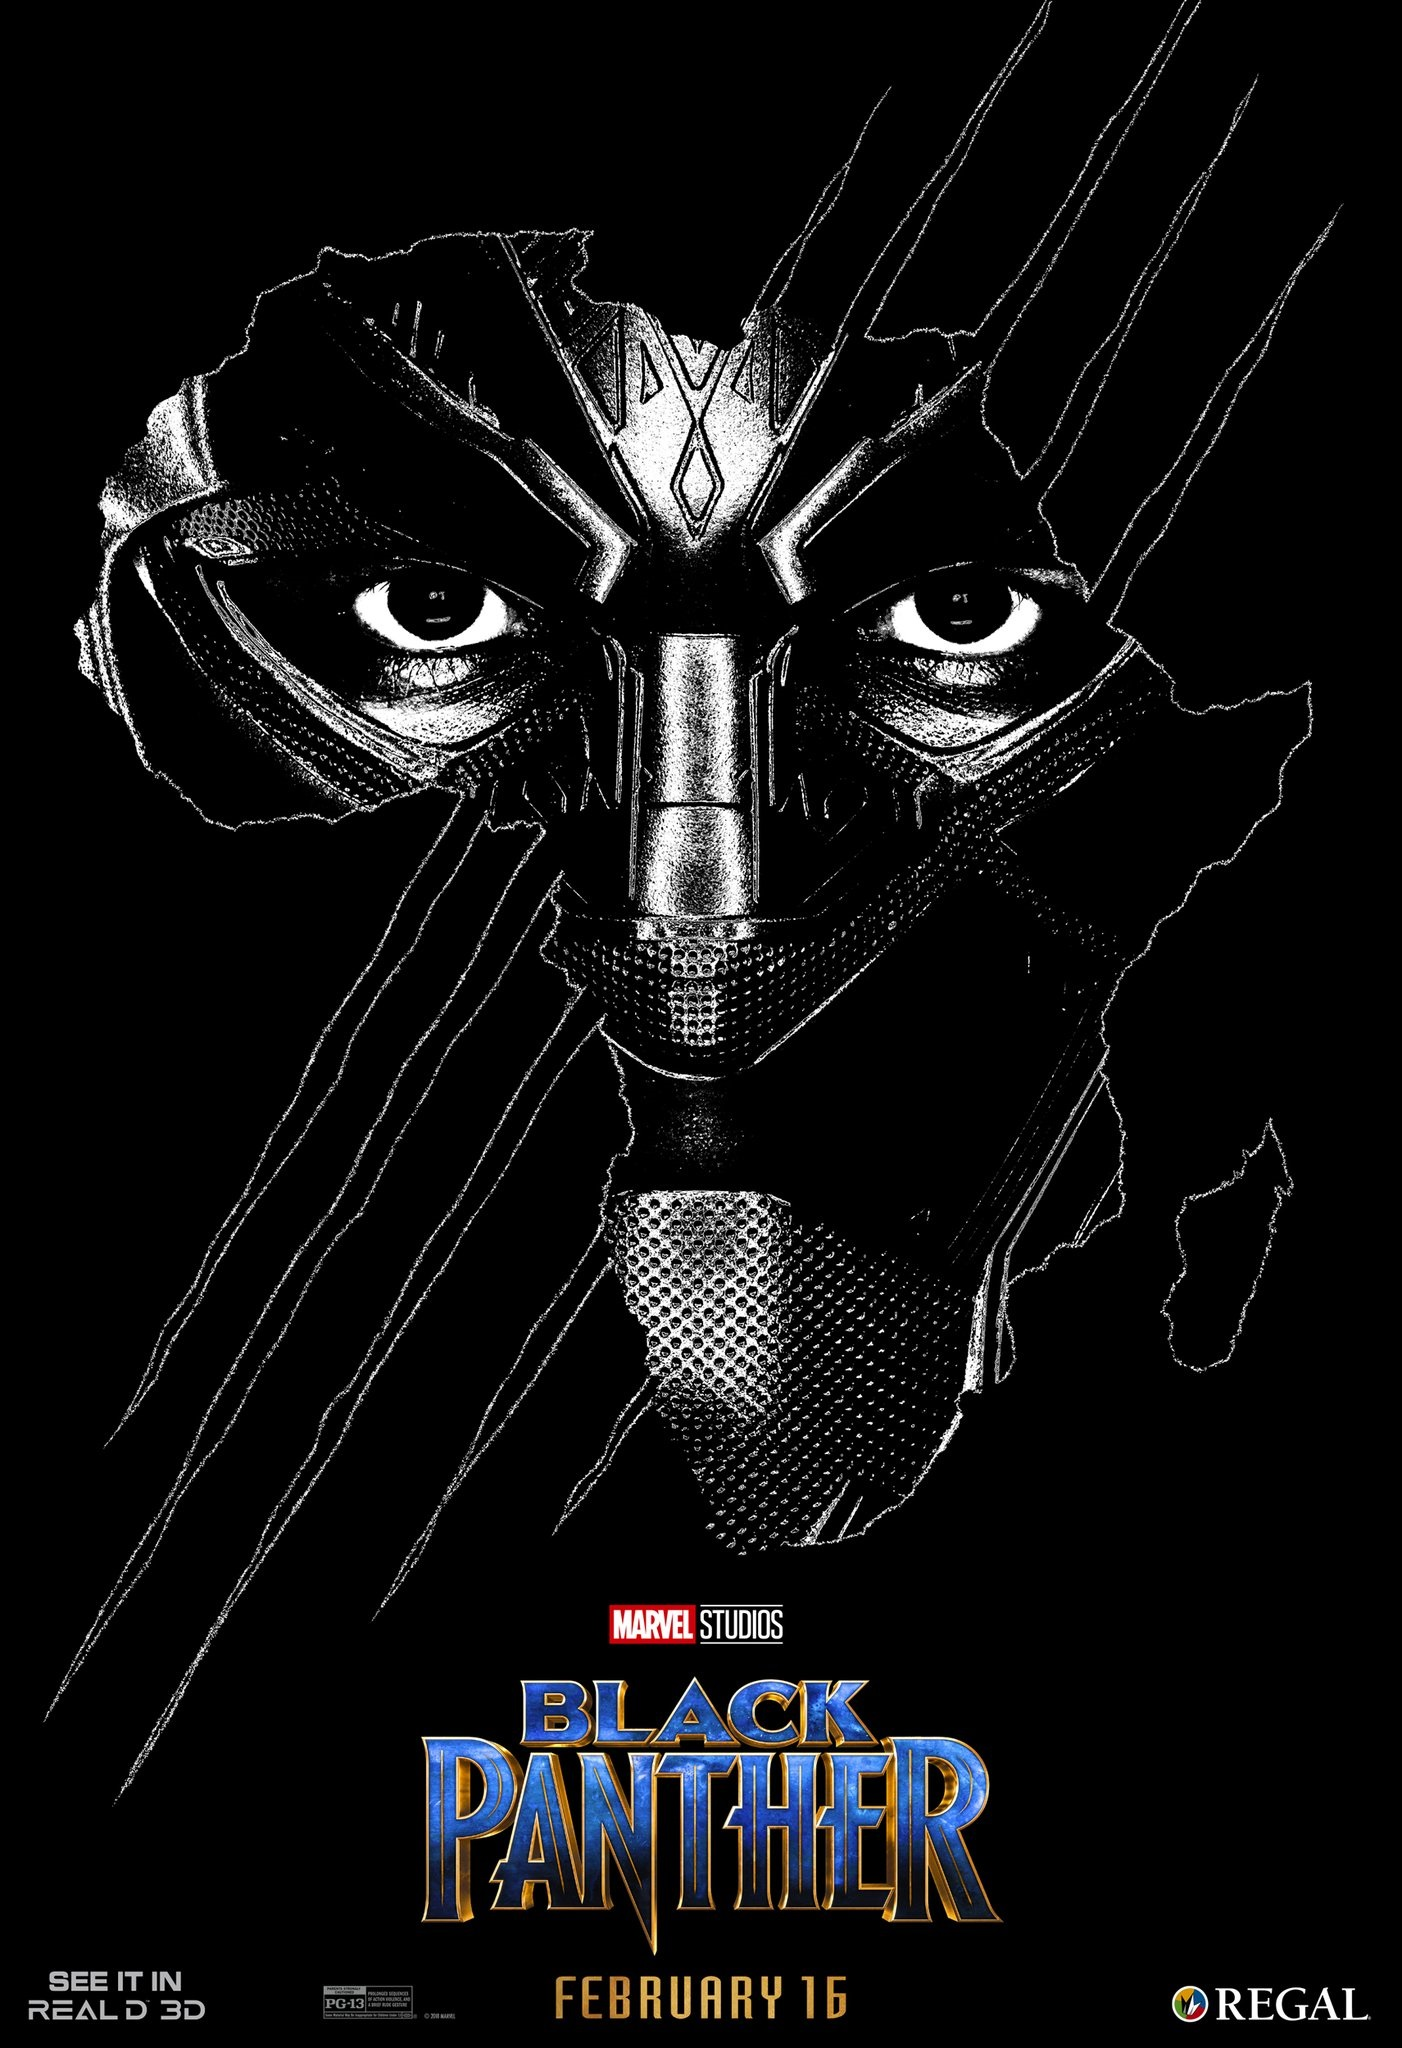 Black Panther's RealD poster